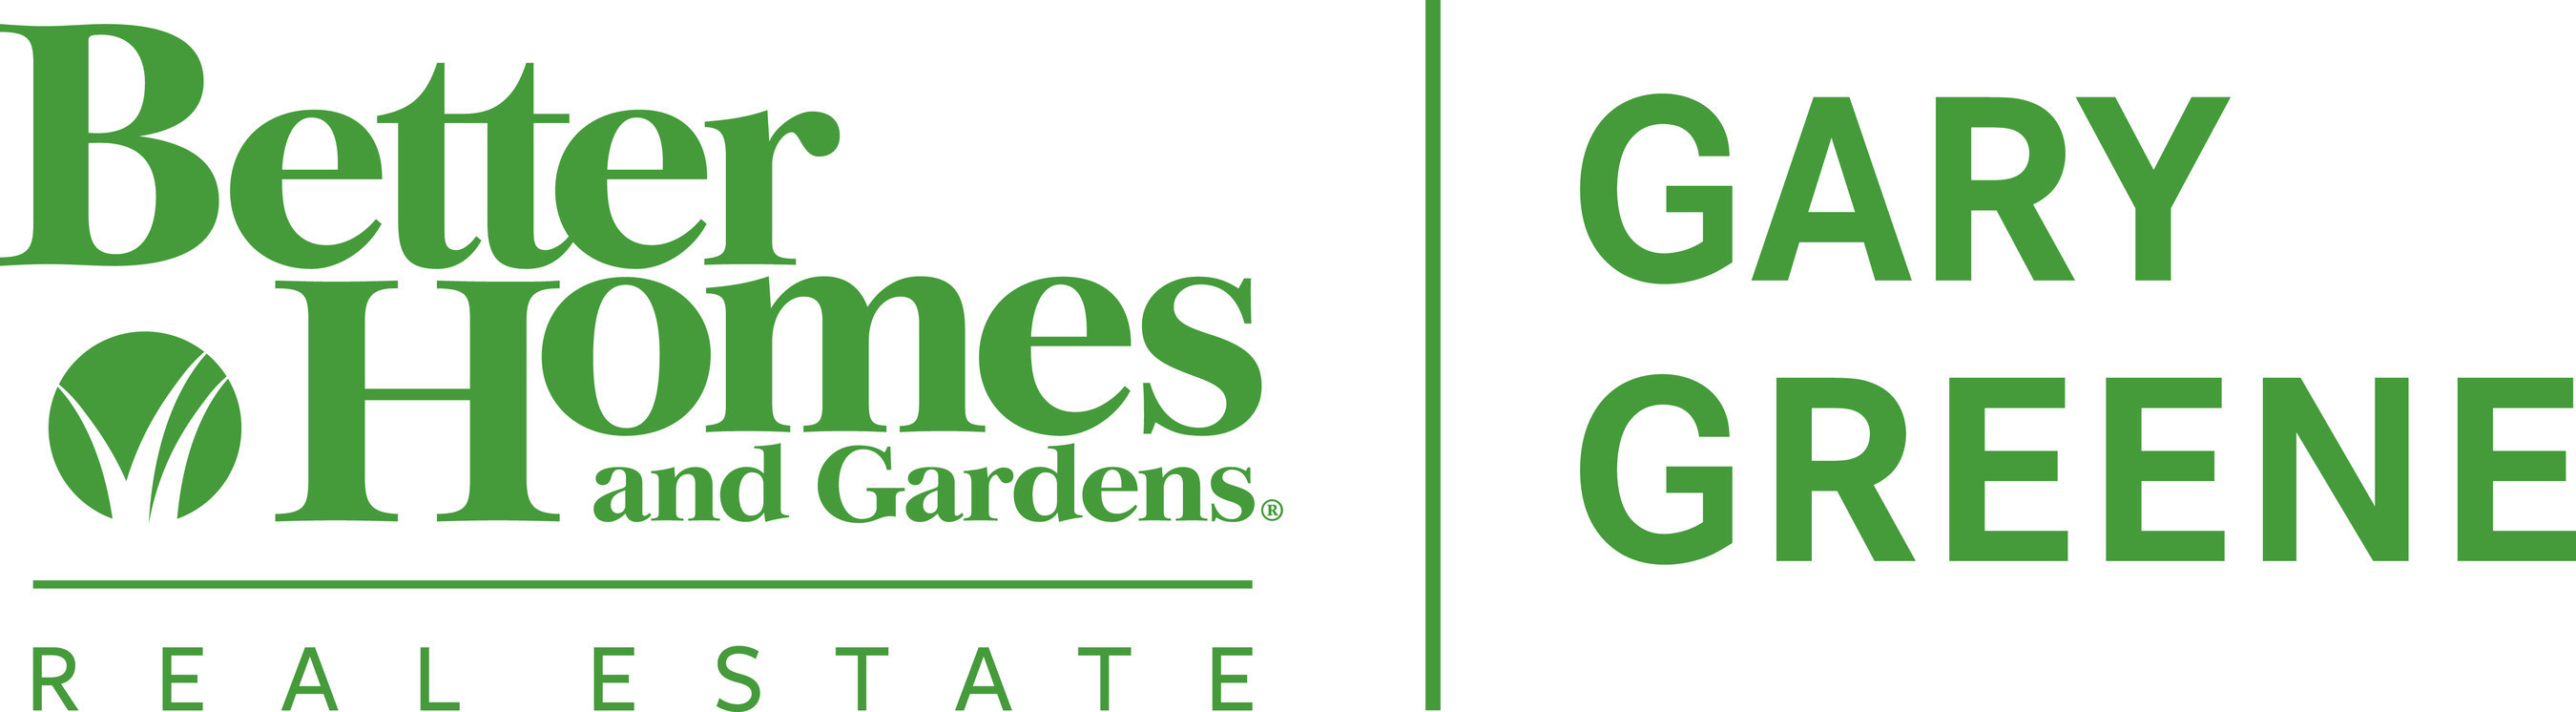 Better homes and gardens real estate gary greene earns top Homes and gardens logo